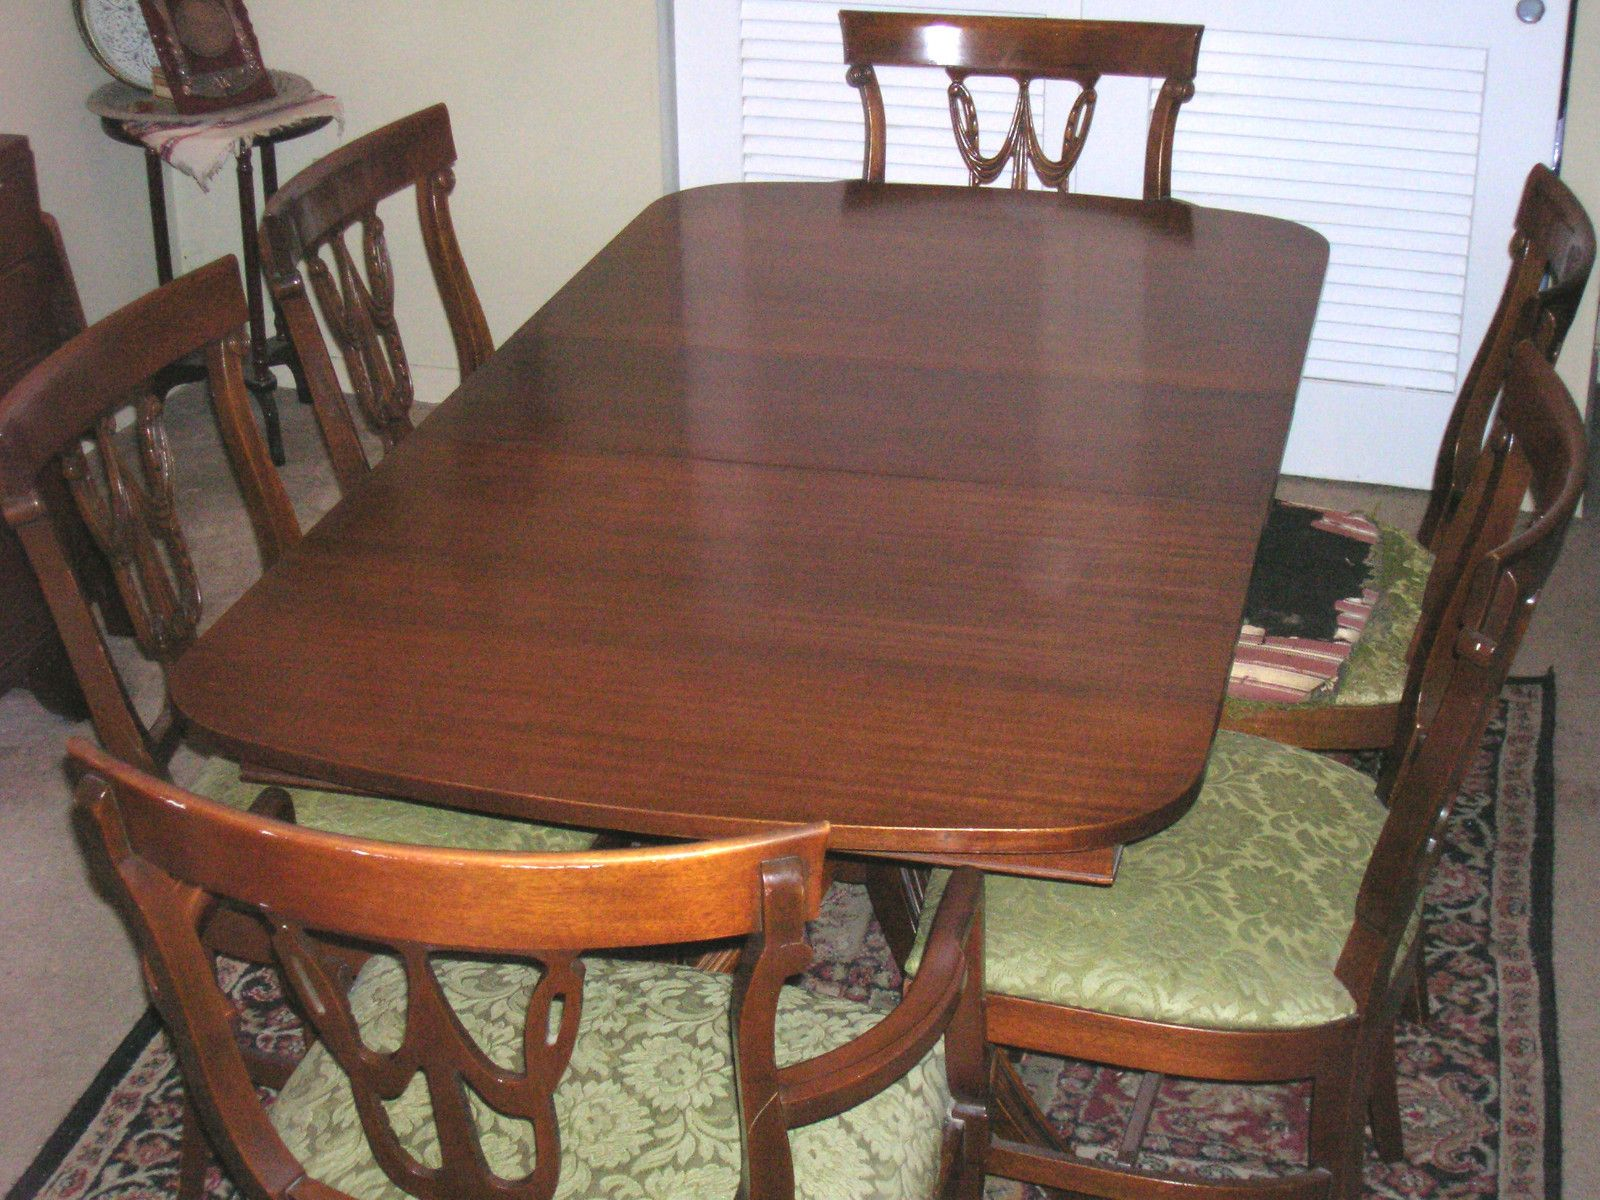 Antique mahogany table and 6 chairs by rway furniture co for R way dining room furniture